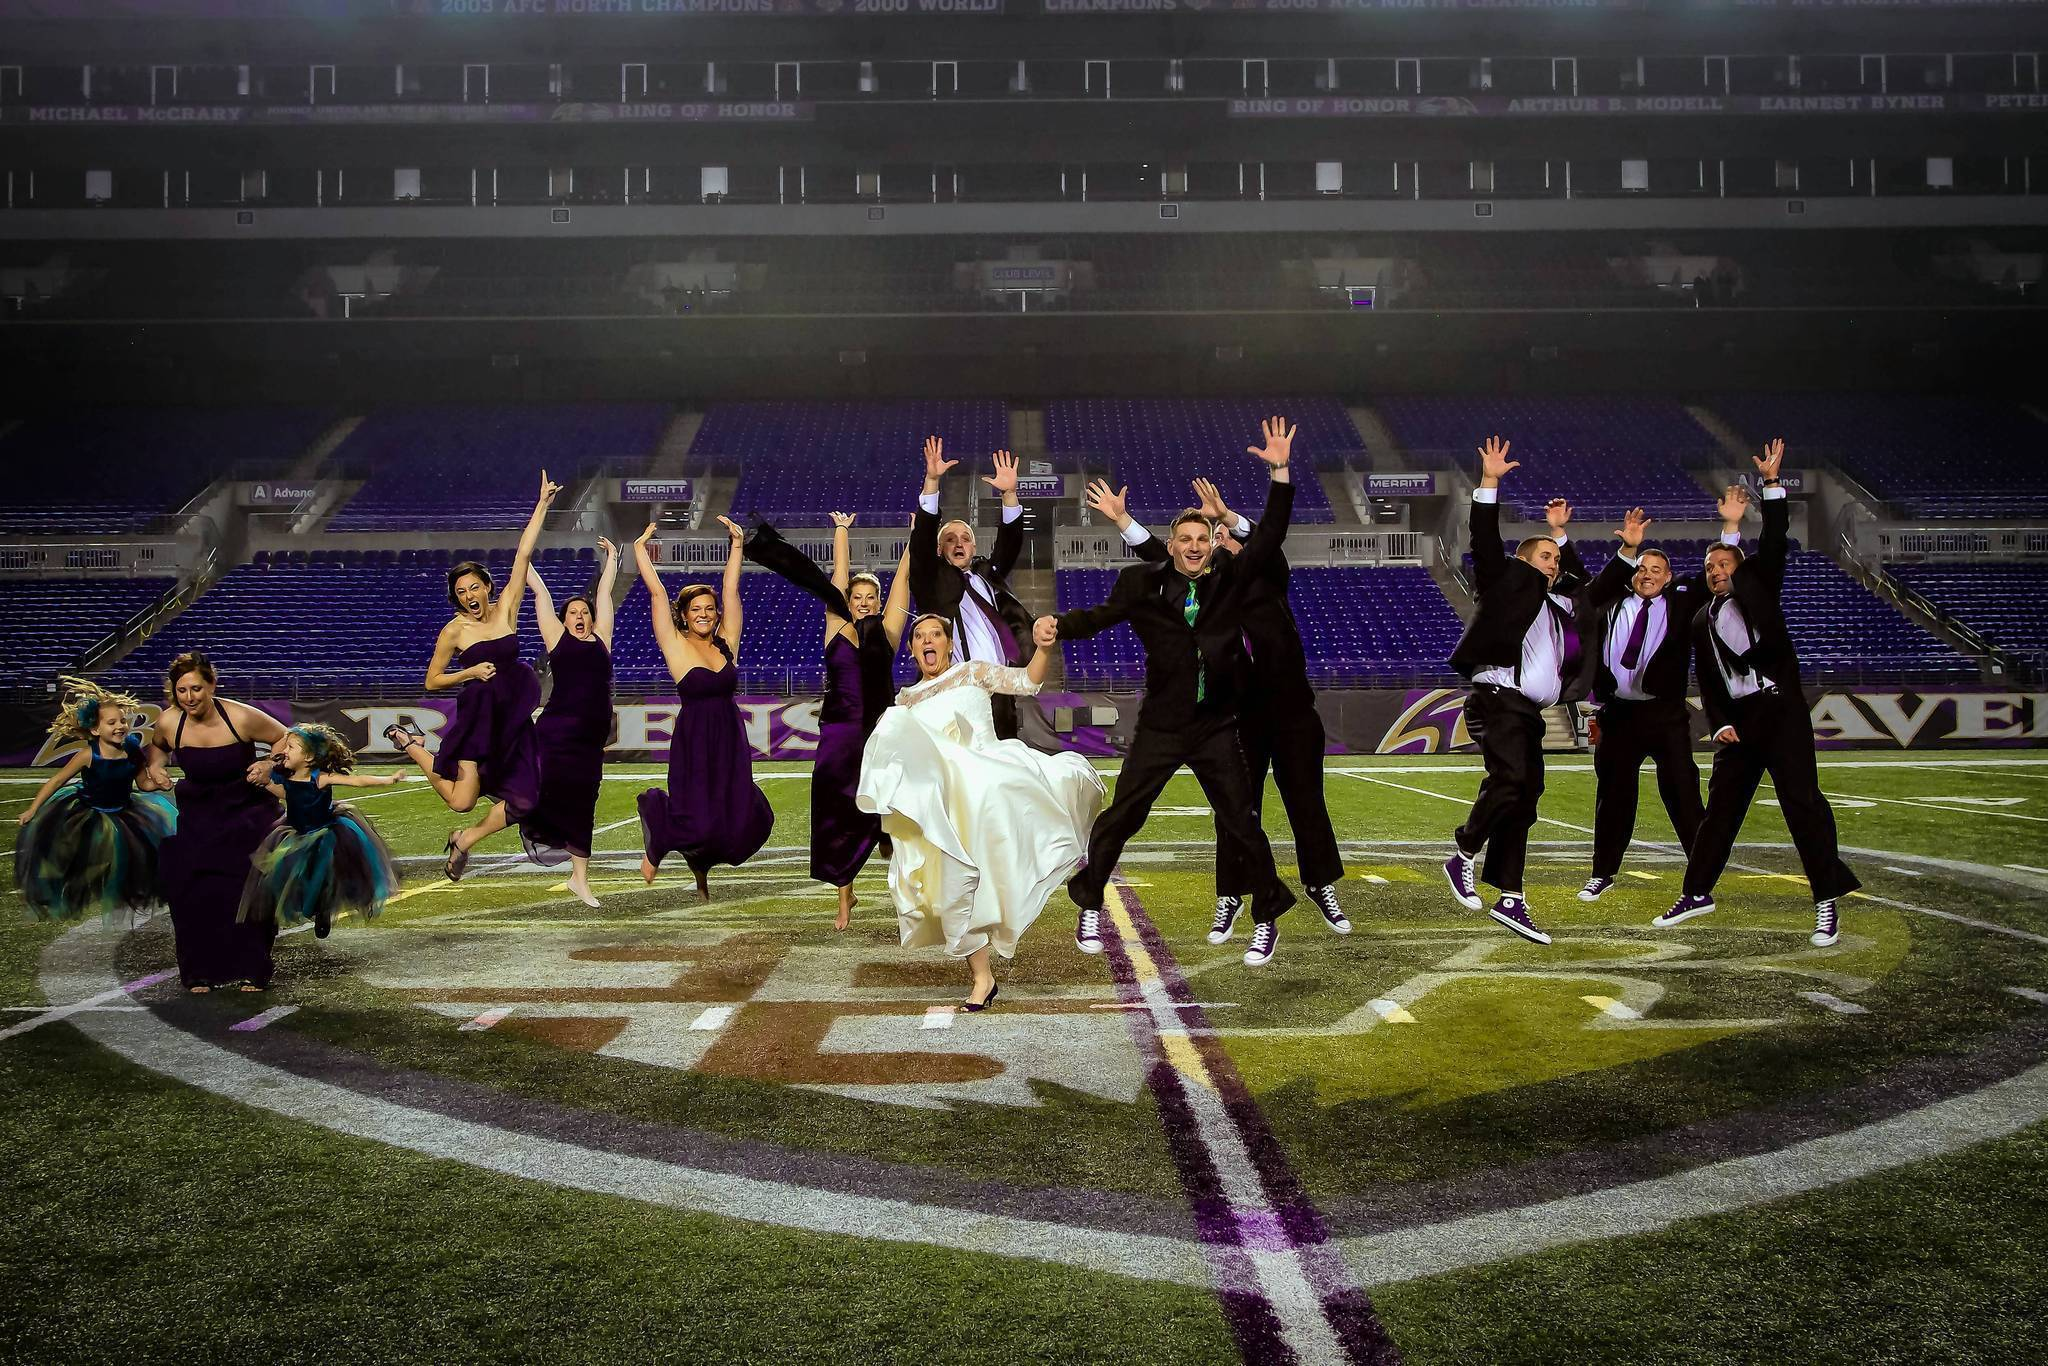 Ravens themes a trend in Baltimore weddings - Baltimore Sun on